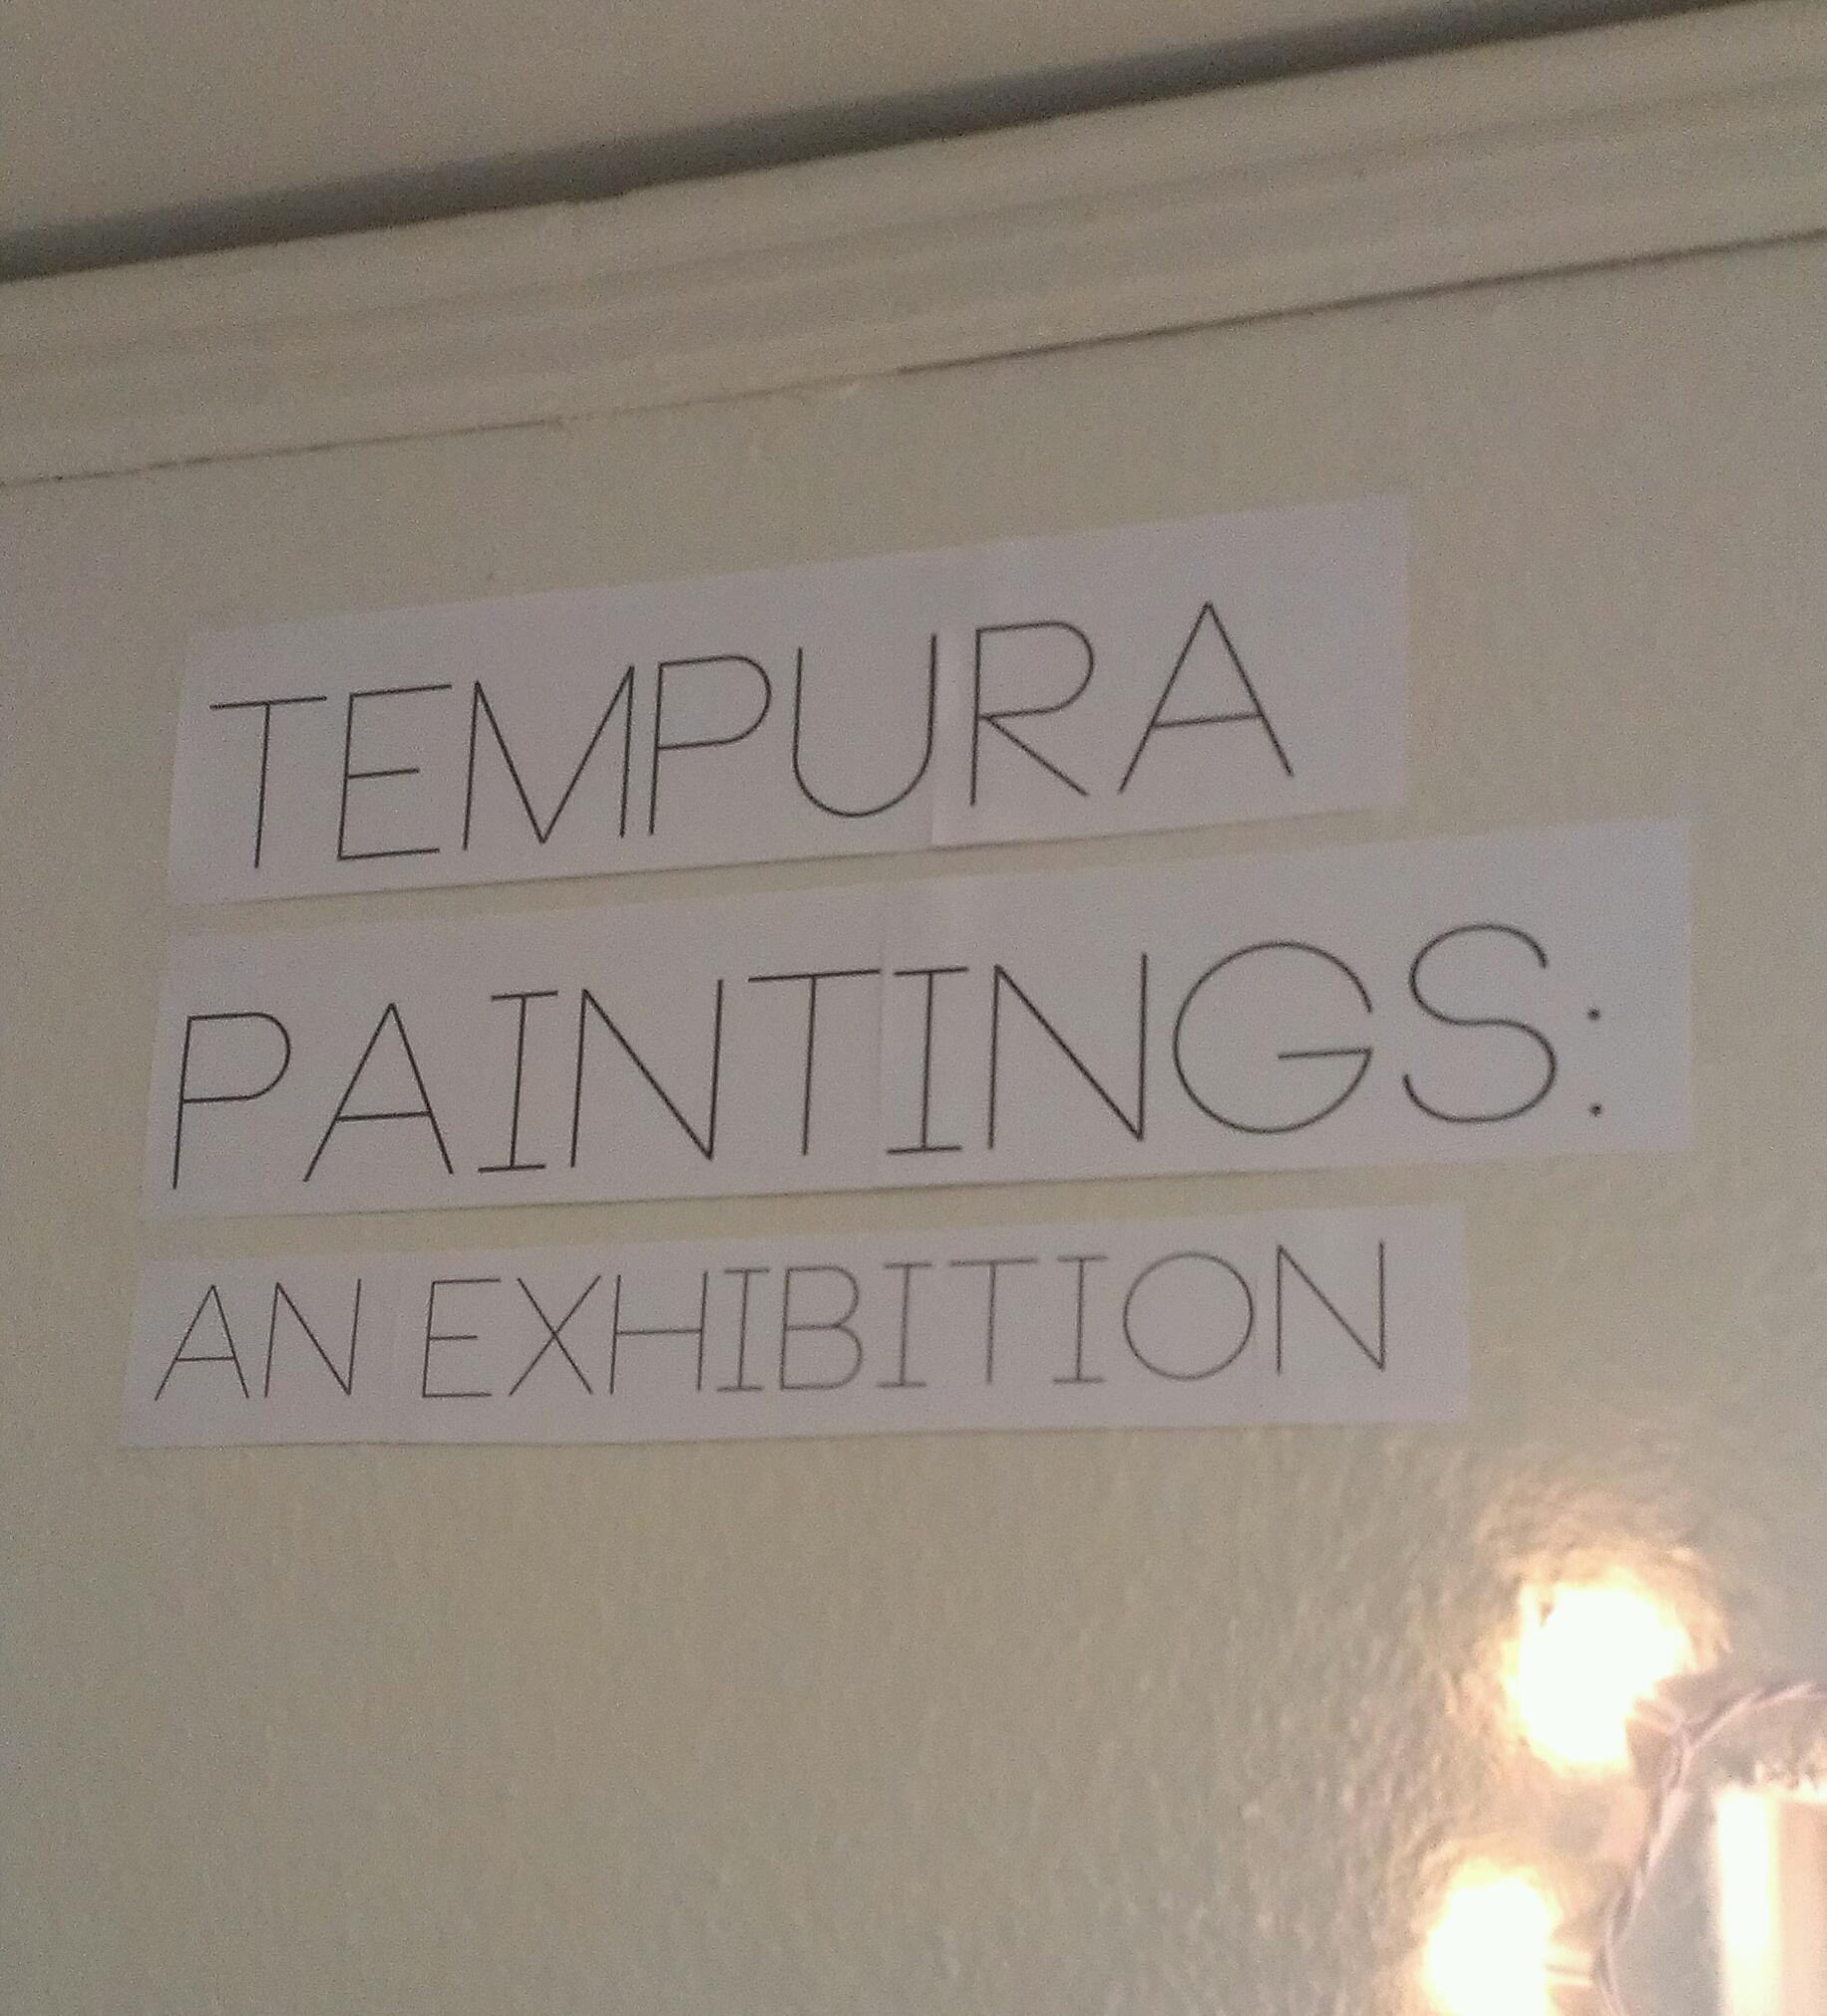 Tempura Paintings: An Exhibition